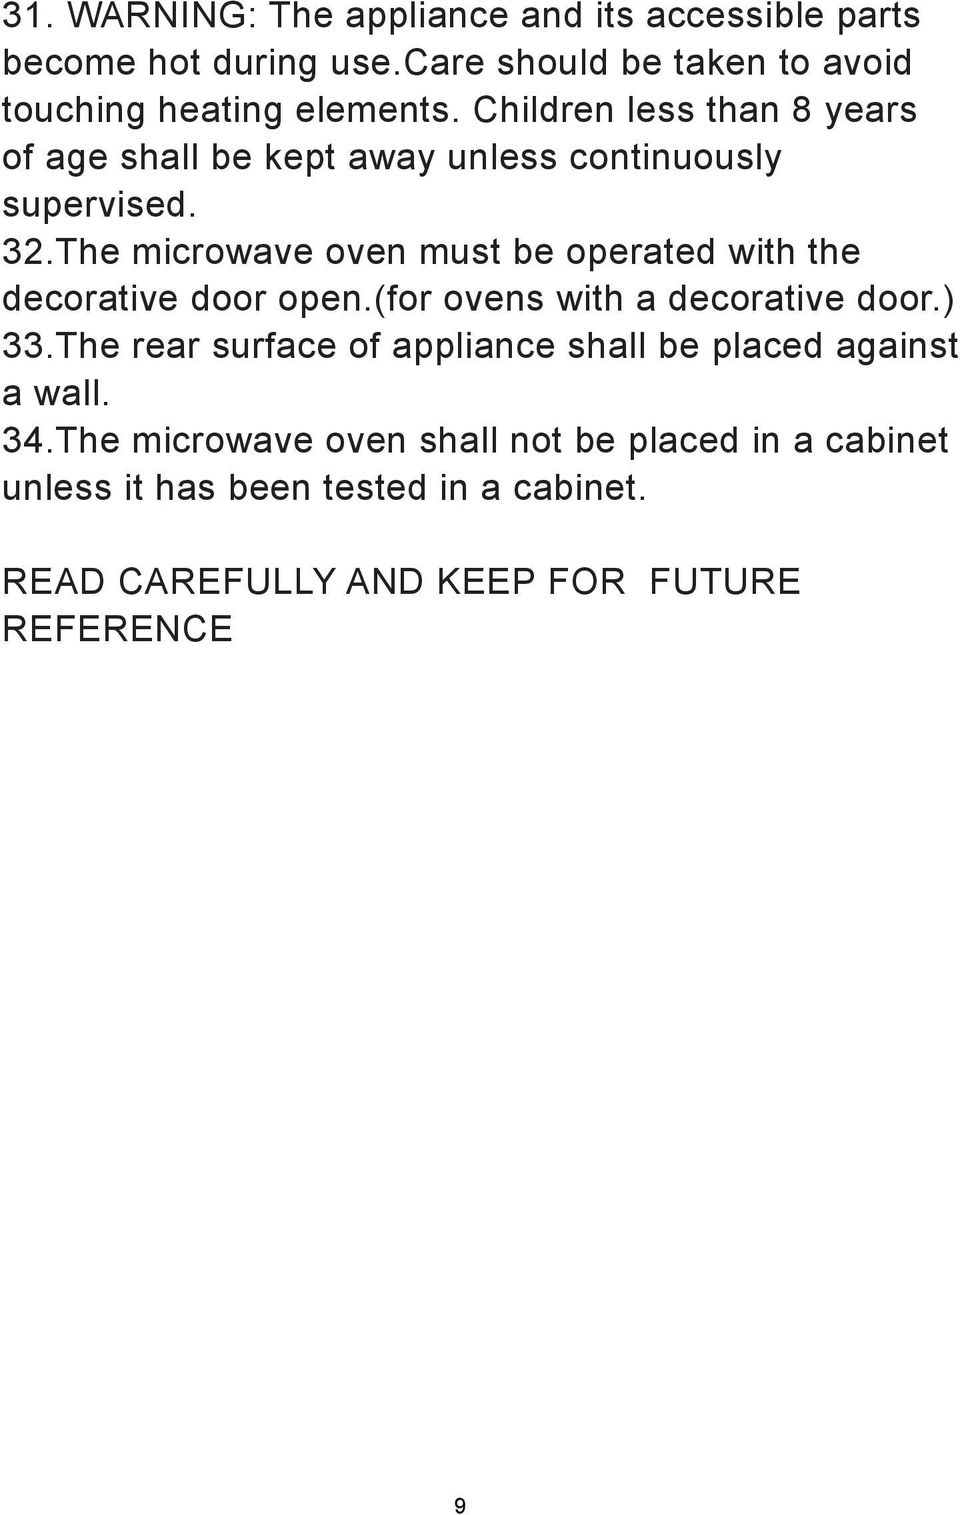 The microwave oven must be operated with the decorative door open.(for ovens with a decorative door.) 33.